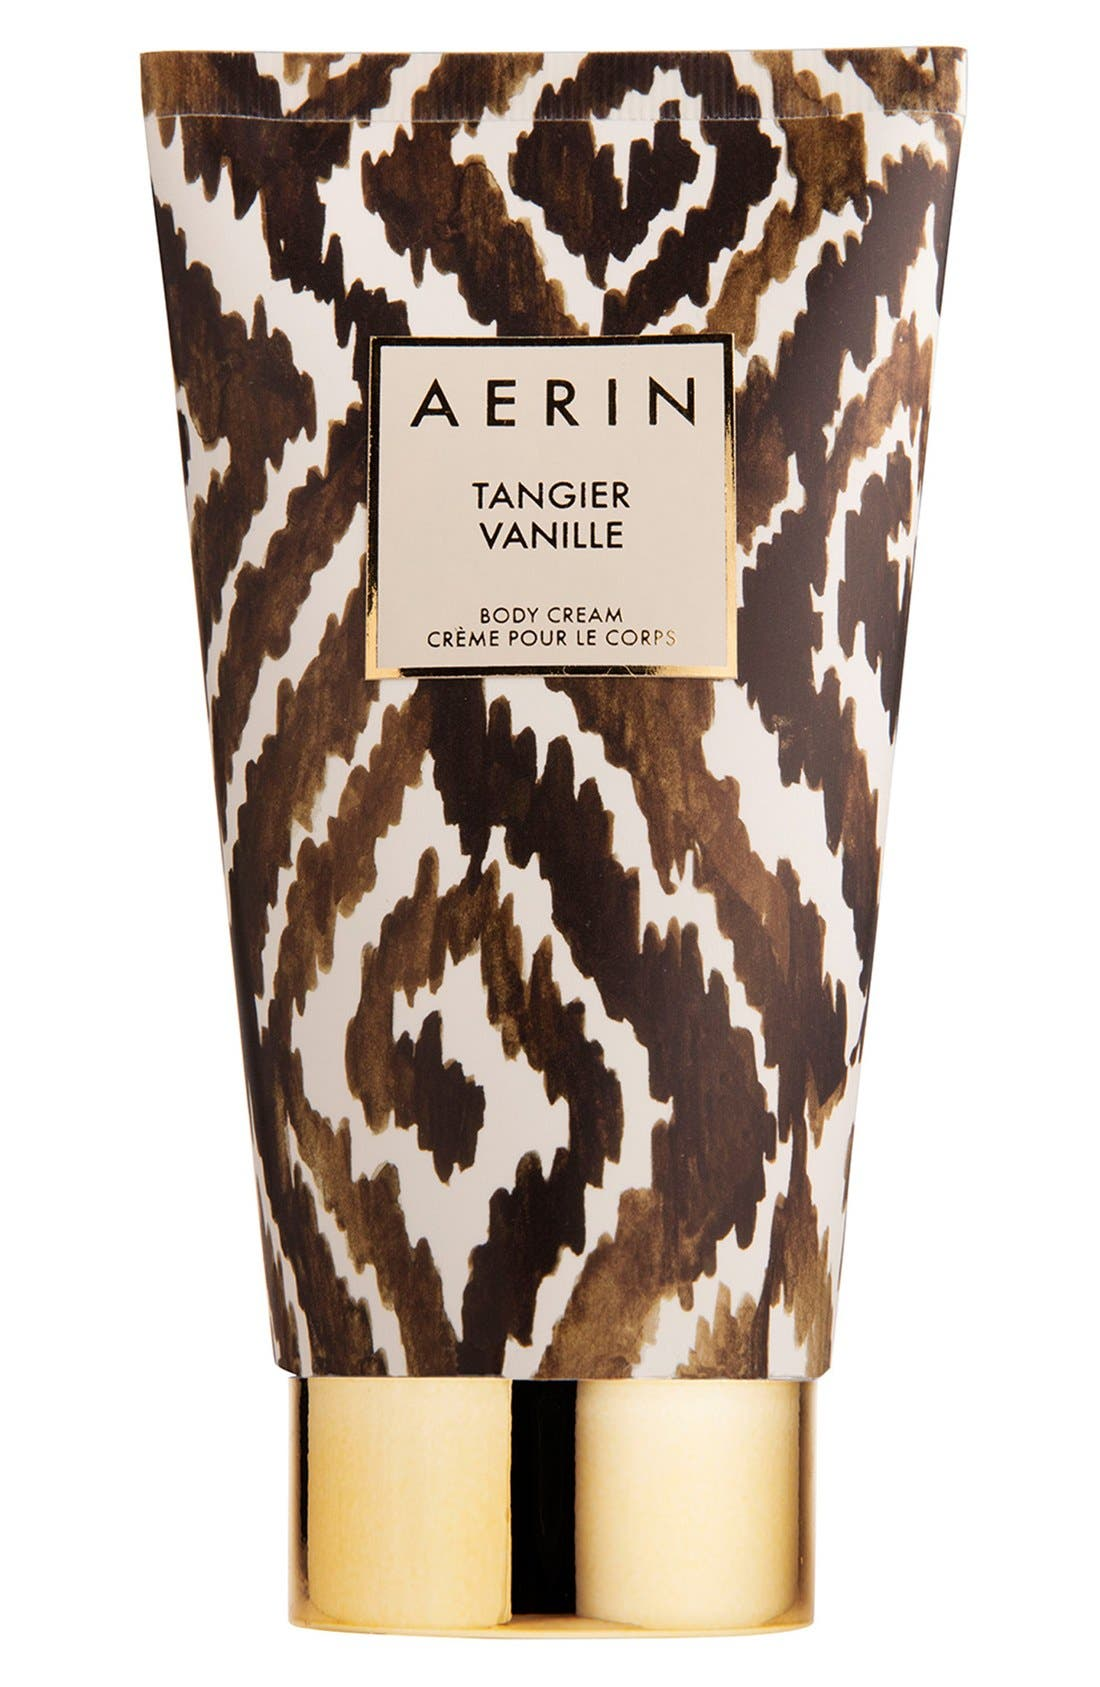 AERIN Beauty Tangier Vanille Body Cream